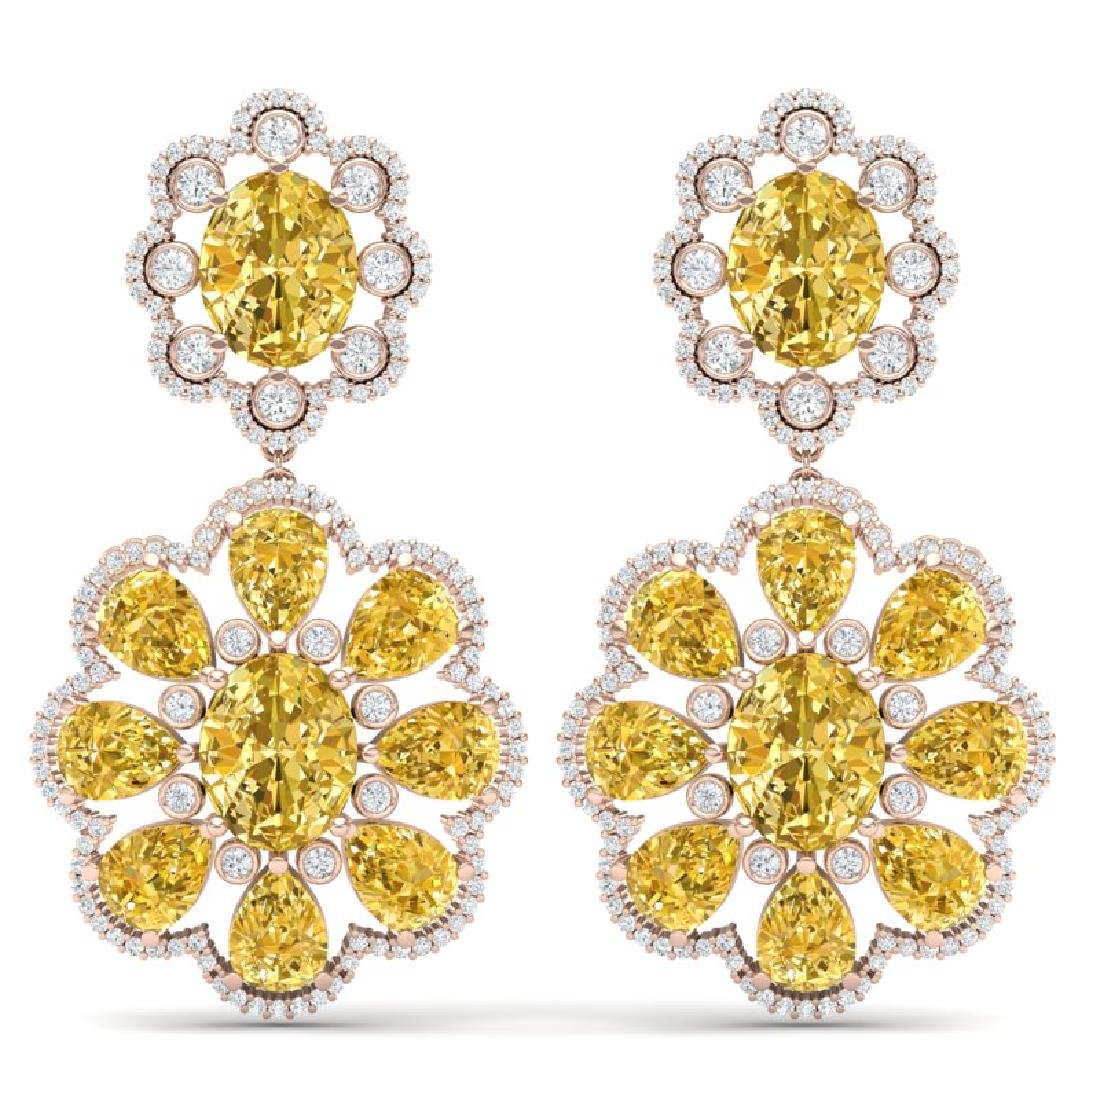 29.9 CTW Royalty Canary Citrine & VS Diamond Earrings